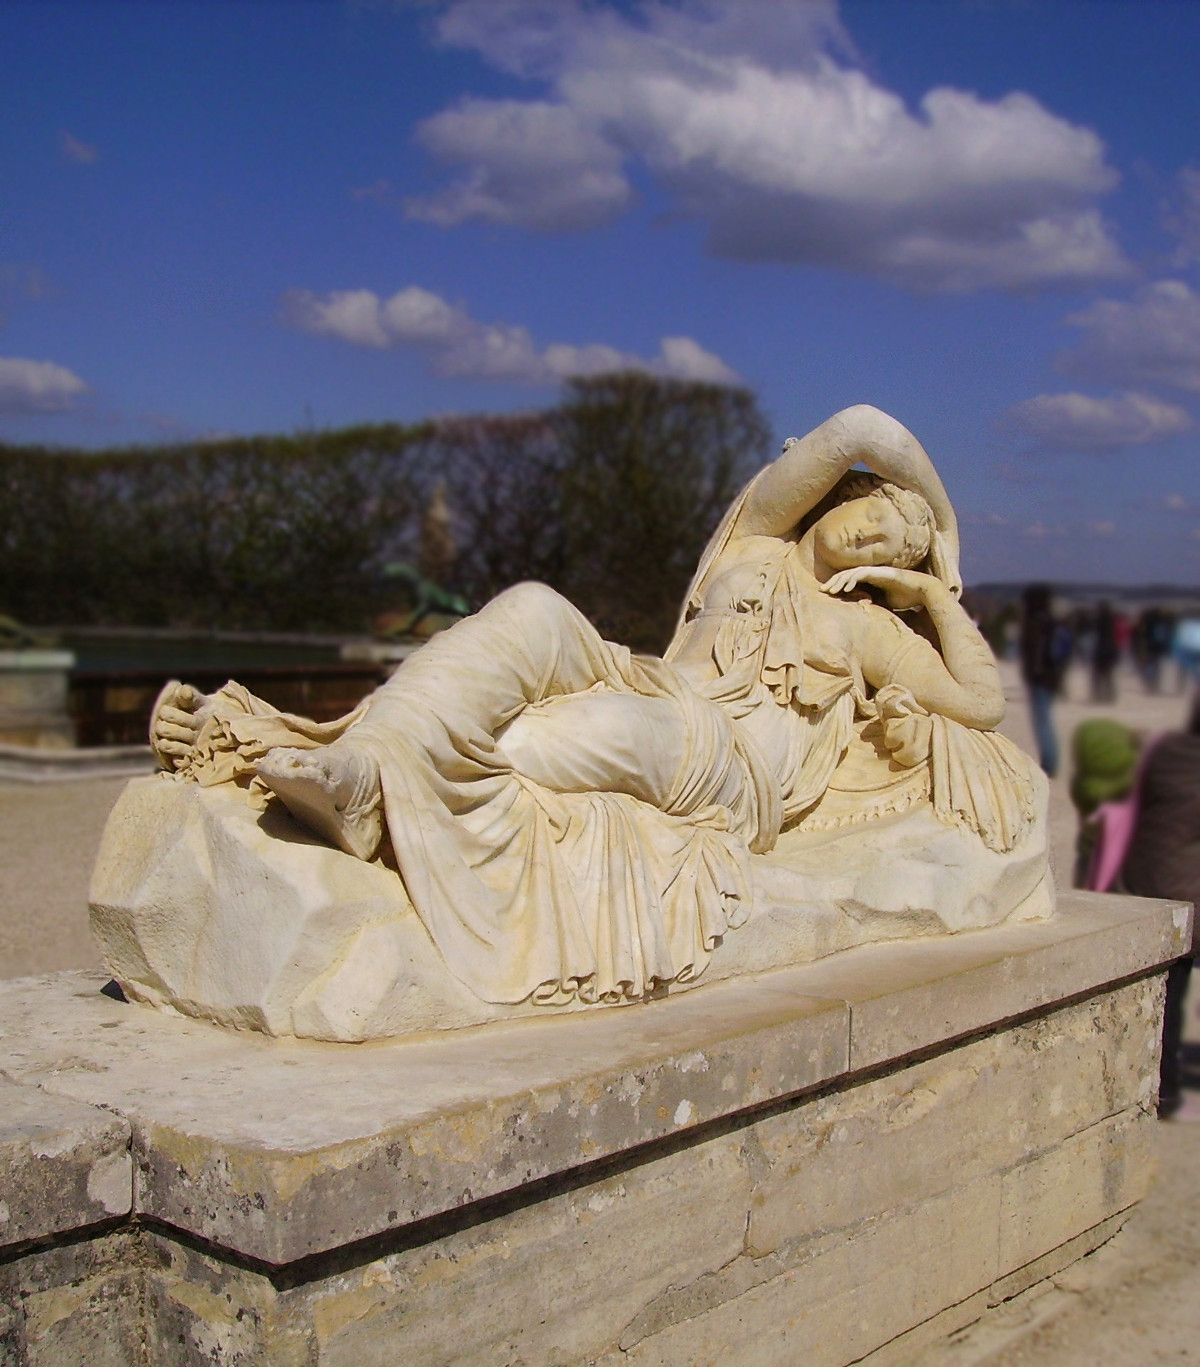 Daydreaming Ariadne at Versailles. Credit Yair Haklai